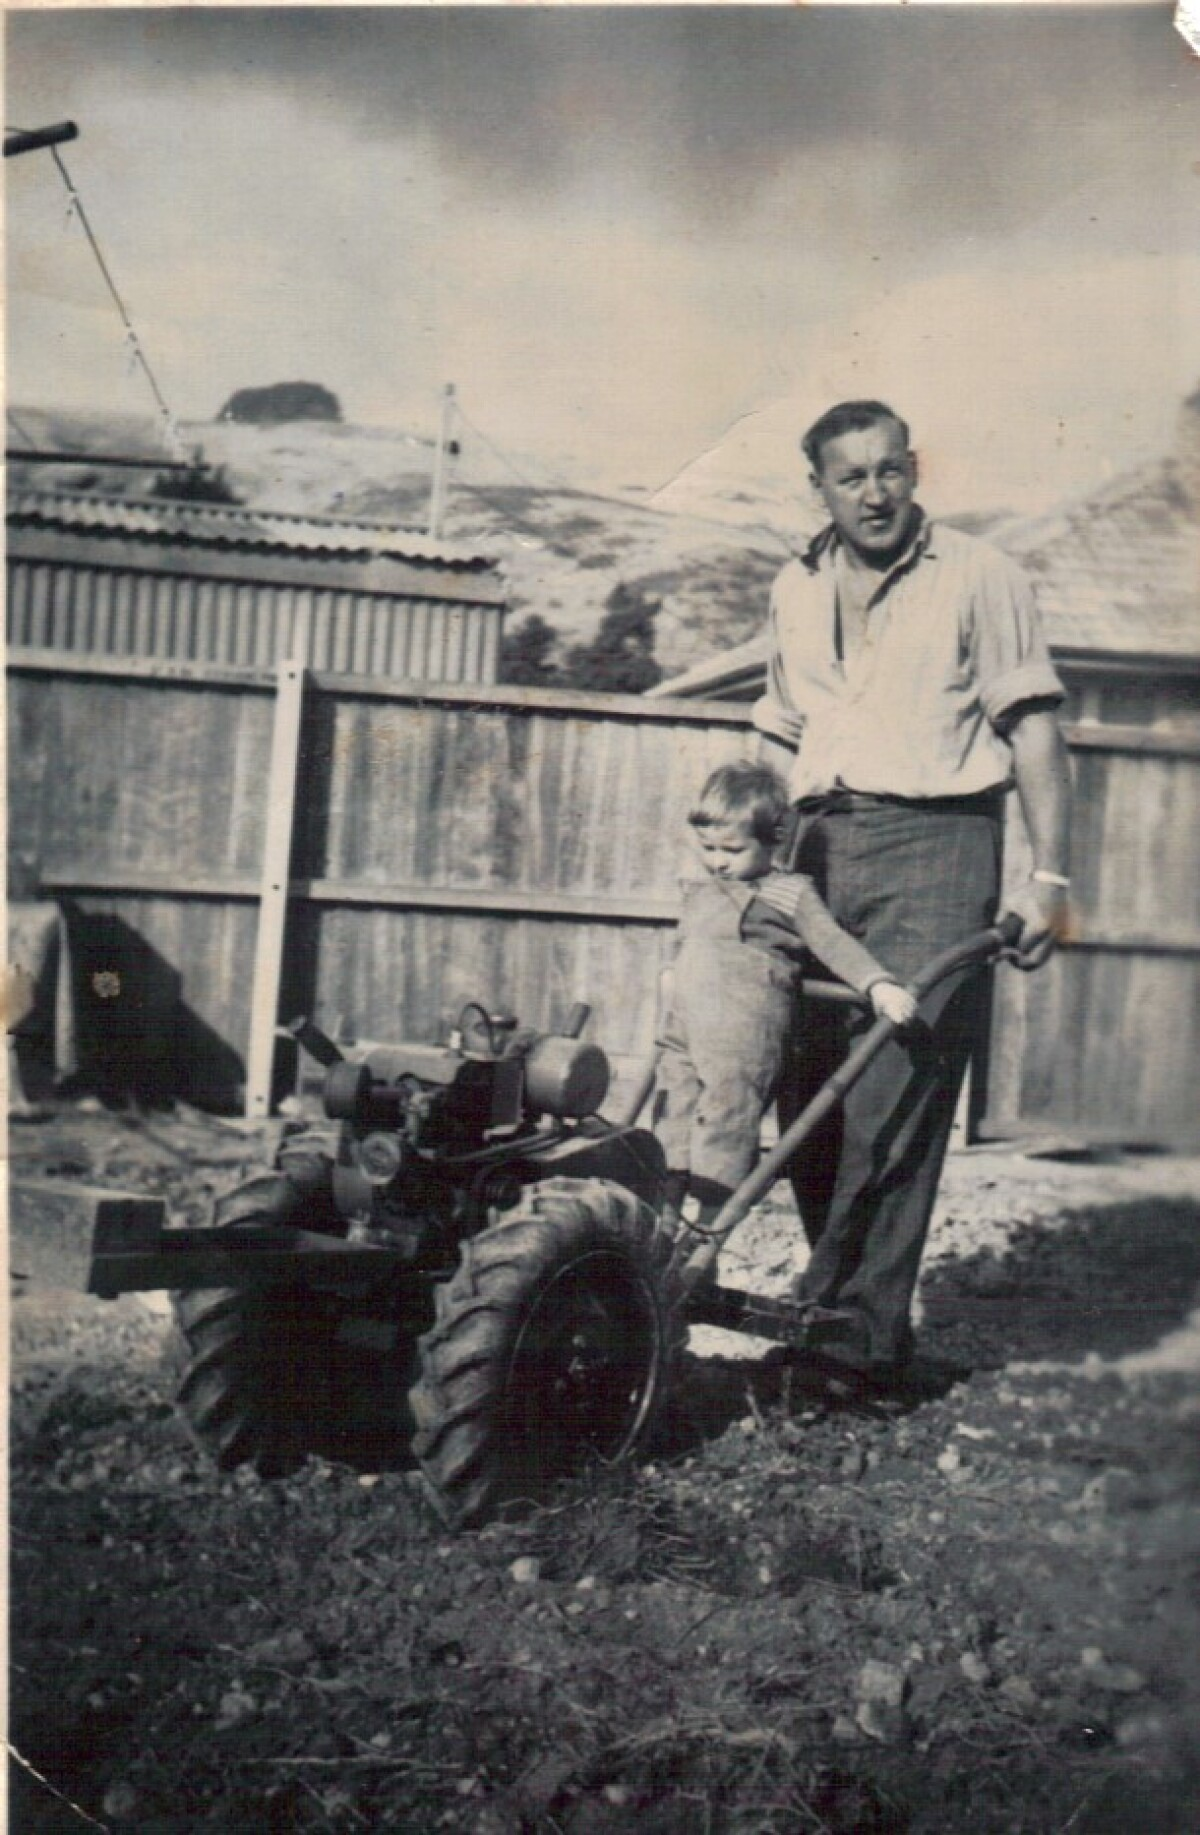 Gardening with Dad in Woolston, 1958. Christchurch City Libraries Photo Hunt. CC BY-NC-SA 4.0. CCL-PH20-DW-126811.